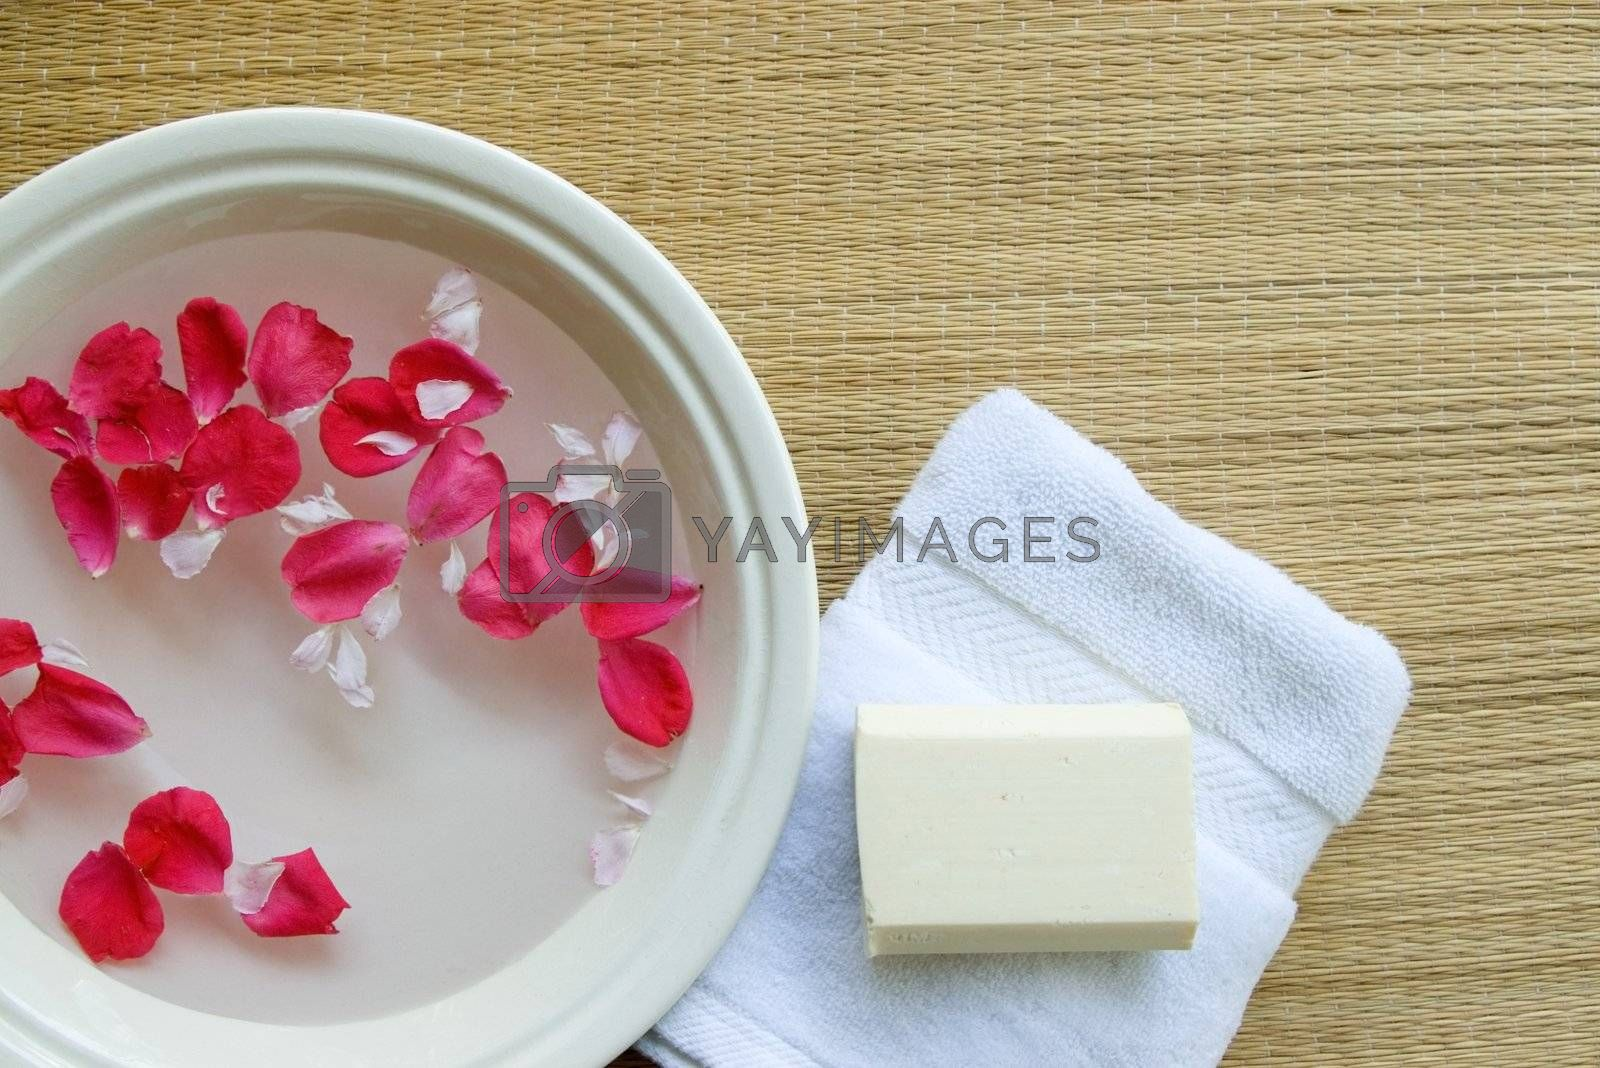 Minimalistic spa setting with floating rose petals, fluffy white towel, and all-natural soap bar.